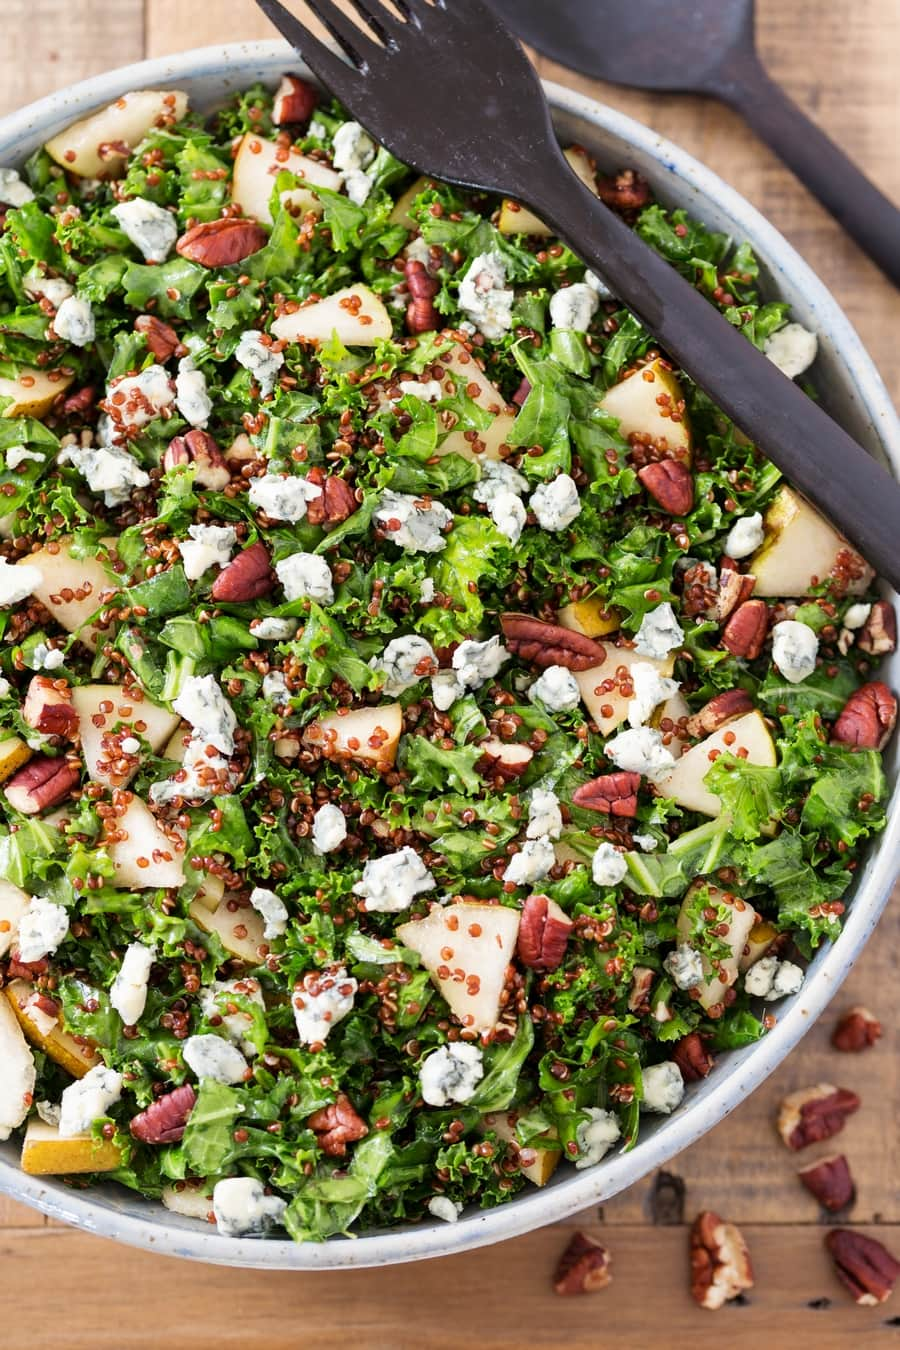 Pear, pecans and blue cheese kale salad with quinoa.